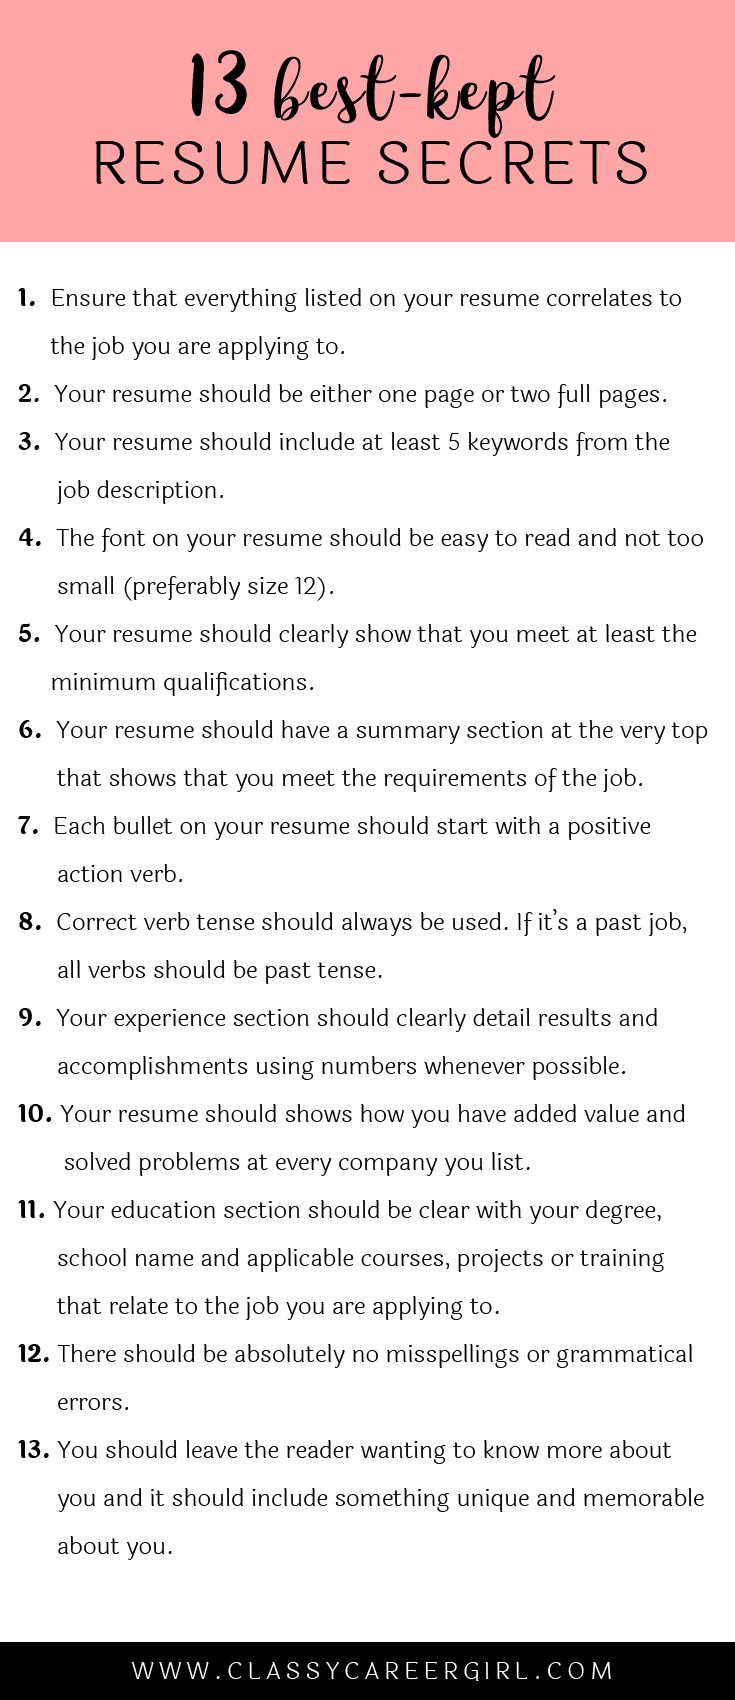 Opposenewapstandardsus  Scenic  Ideas About Resume On Pinterest  Cv Format Resume Cv And  With Likable Some Hiring Managers Will Toss Your Resume Out If You Dont Know These  With Archaic How To Write A Resume For An Internship Also Cool Resume Designs In Addition Clinical Research Coordinator Resume And Resume Template In Word As Well As Objective For Resumes Additionally Resumes For Nurses From Pinterestcom With Opposenewapstandardsus  Likable  Ideas About Resume On Pinterest  Cv Format Resume Cv And  With Archaic Some Hiring Managers Will Toss Your Resume Out If You Dont Know These  And Scenic How To Write A Resume For An Internship Also Cool Resume Designs In Addition Clinical Research Coordinator Resume From Pinterestcom